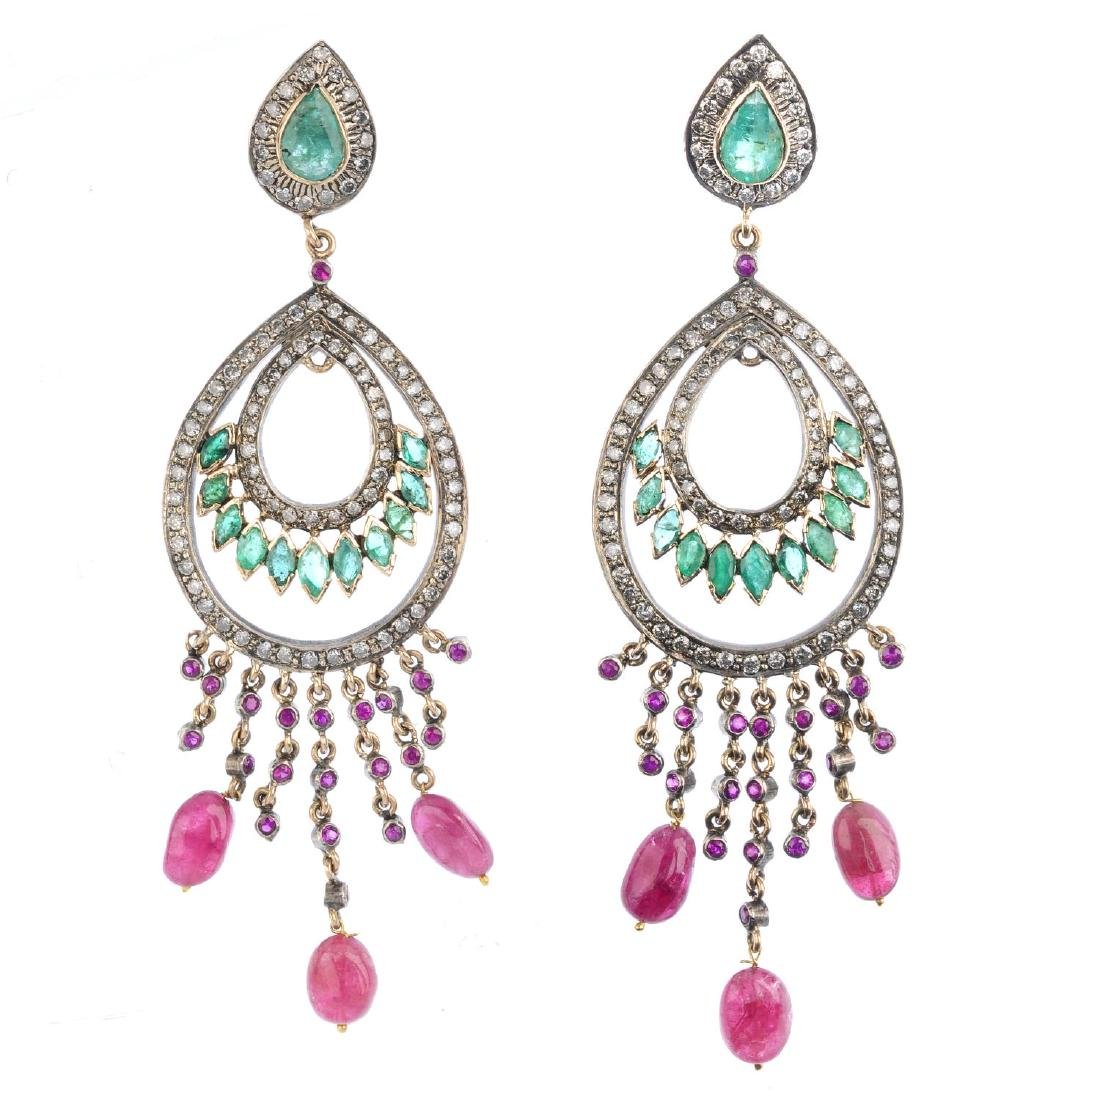 A pair of diamond, emerald and ruby earrings. Each